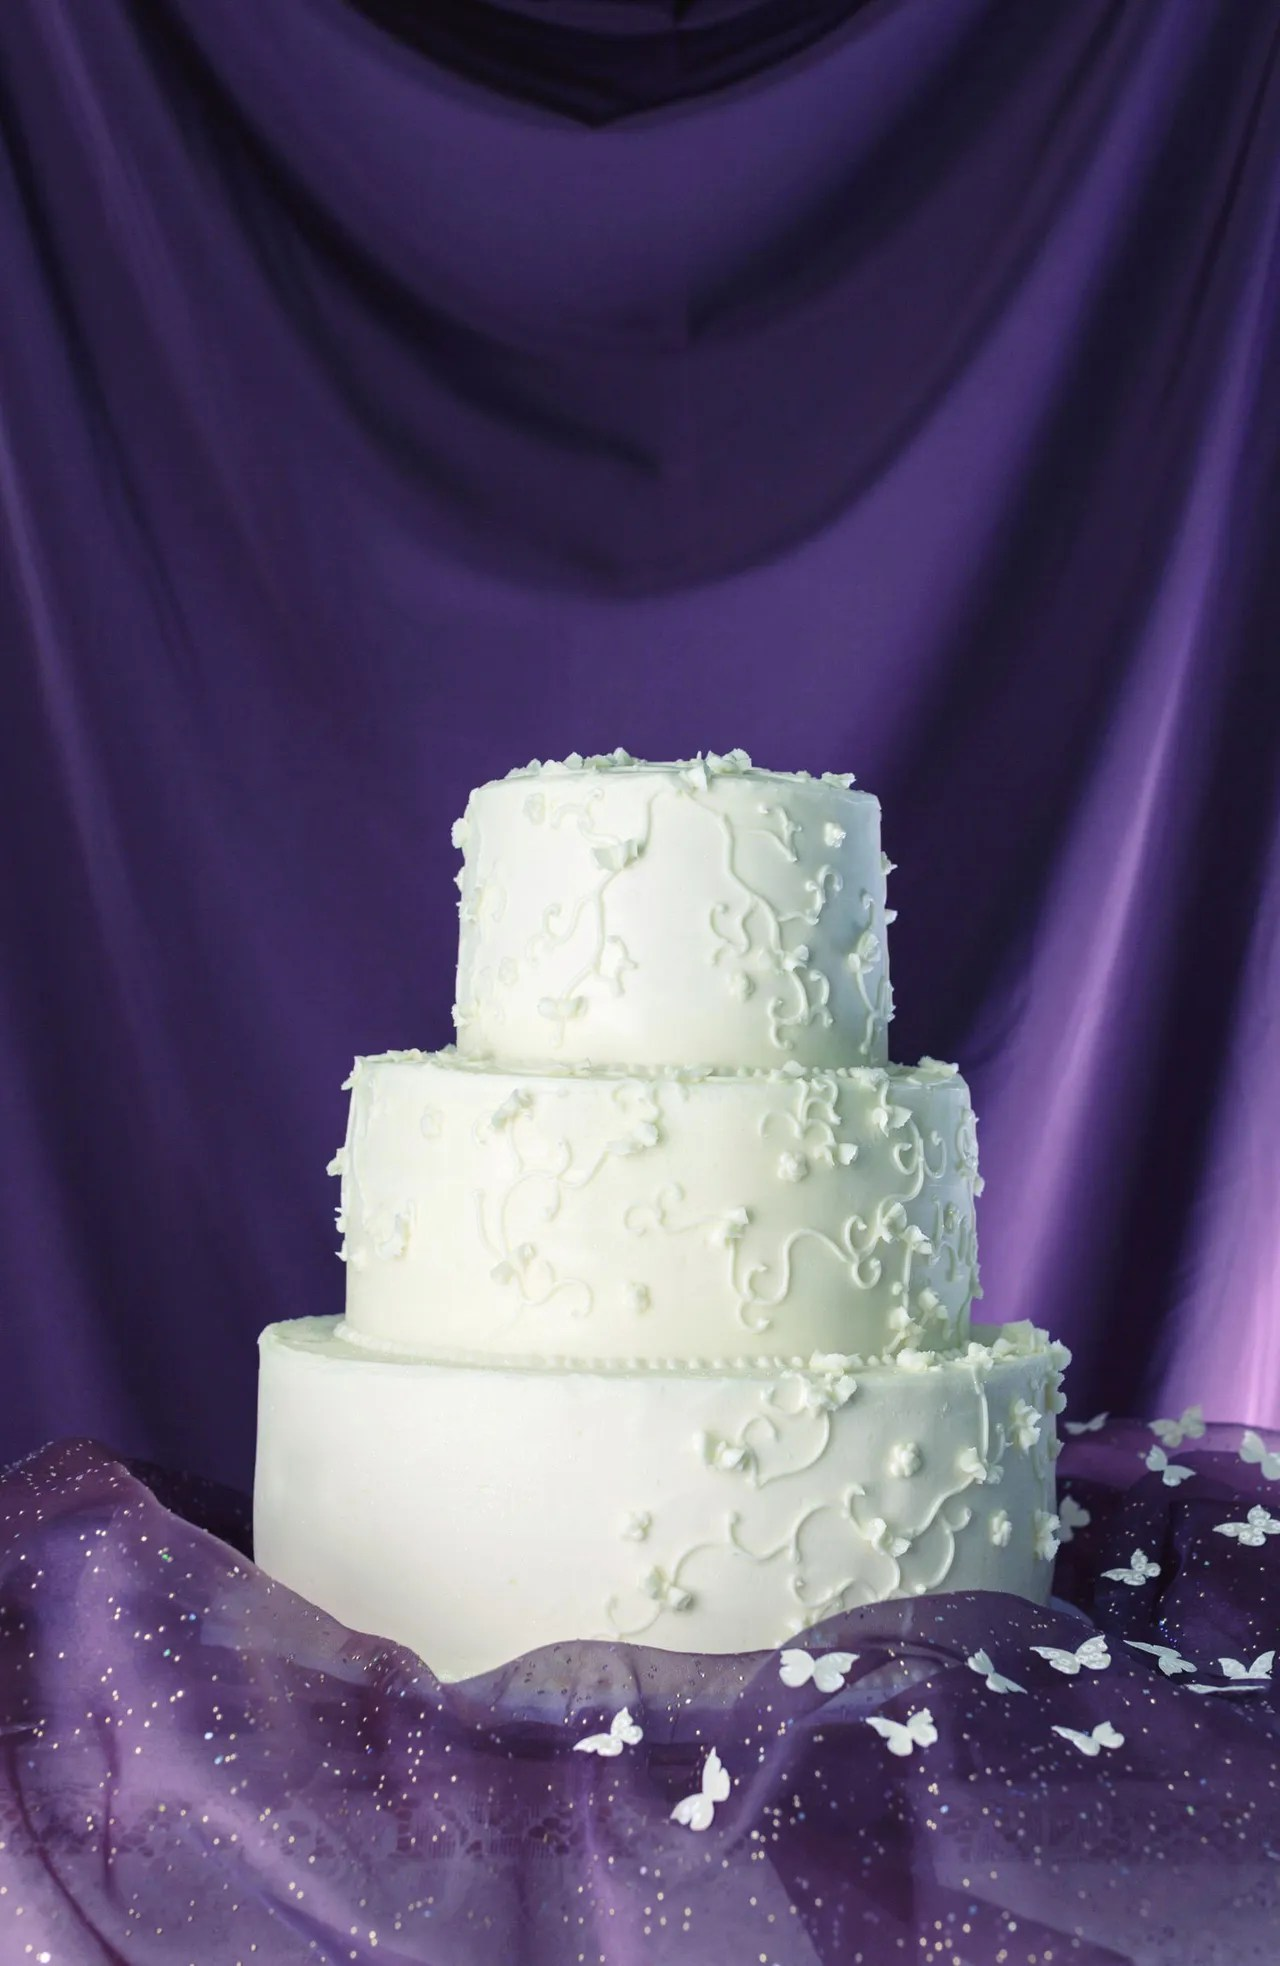 21 Magnolia Bakery Wedding Cakes That Look So Delicious NO Fondant You Might Try to Eat Your